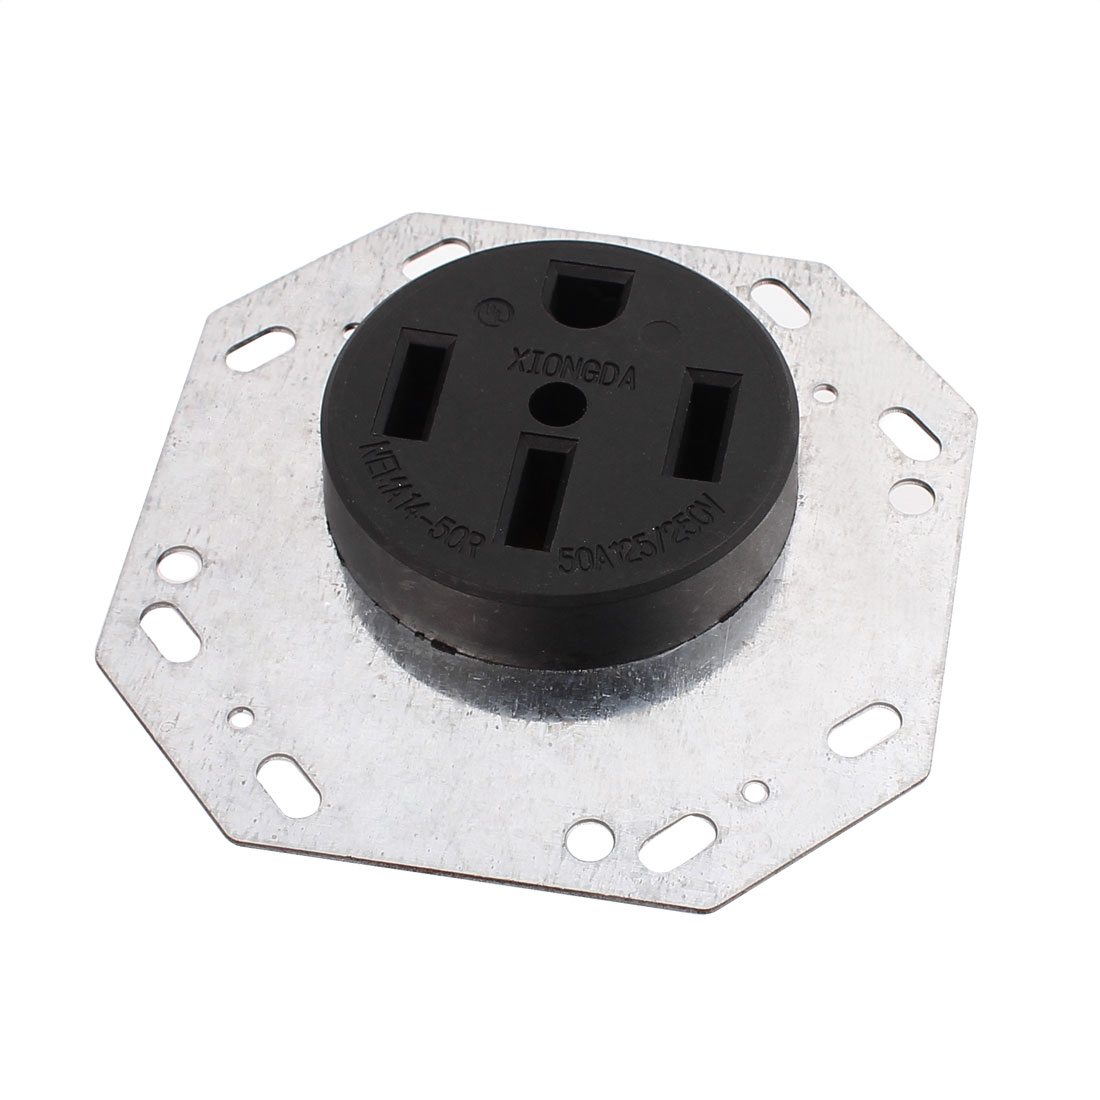 125/250V 50A 4 US Socket Bagua Shaped Panel Flush Mounting Receptacle Grounding